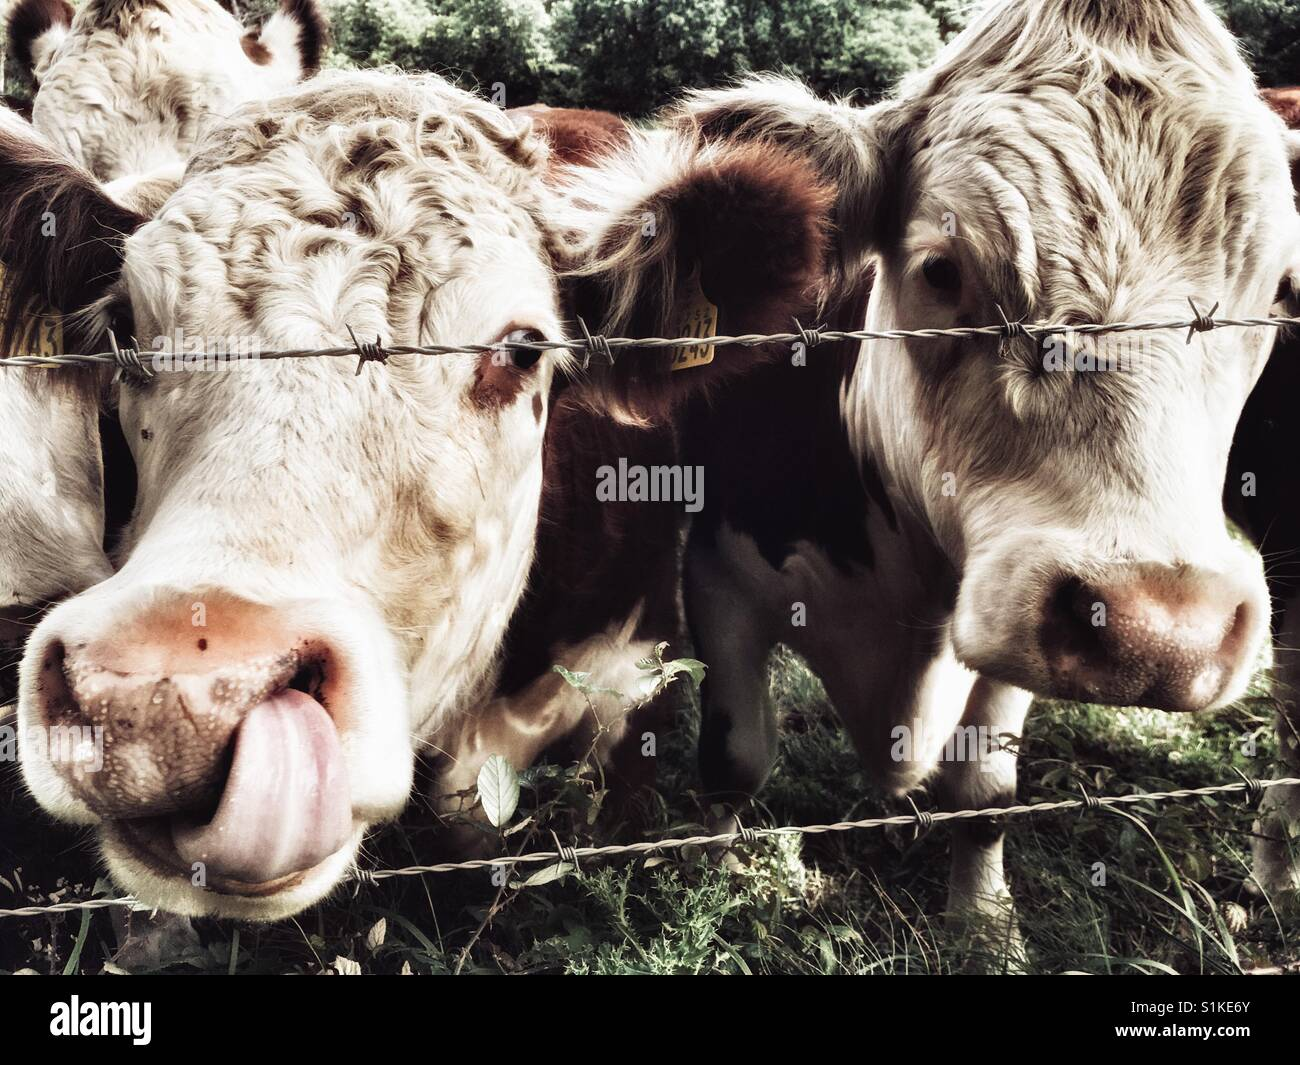 Beef cattle, Capel St Andrew, Suffolk, UK. - Stock Image